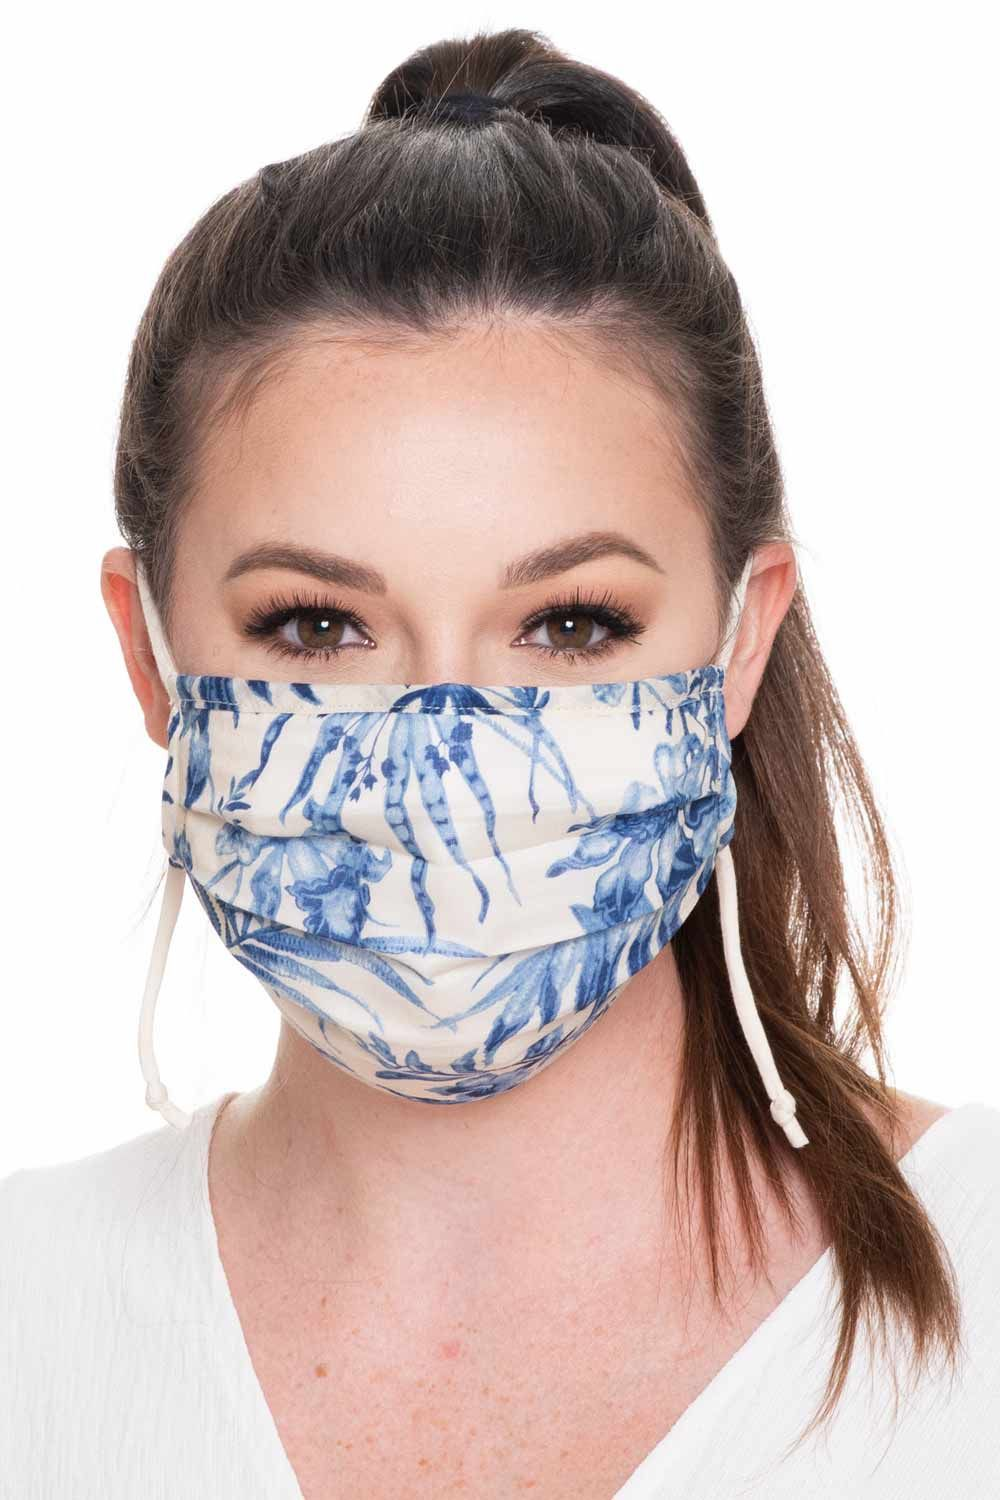 Printed Face Masks With Designs Cute Cotton Bamboo Virus Masks